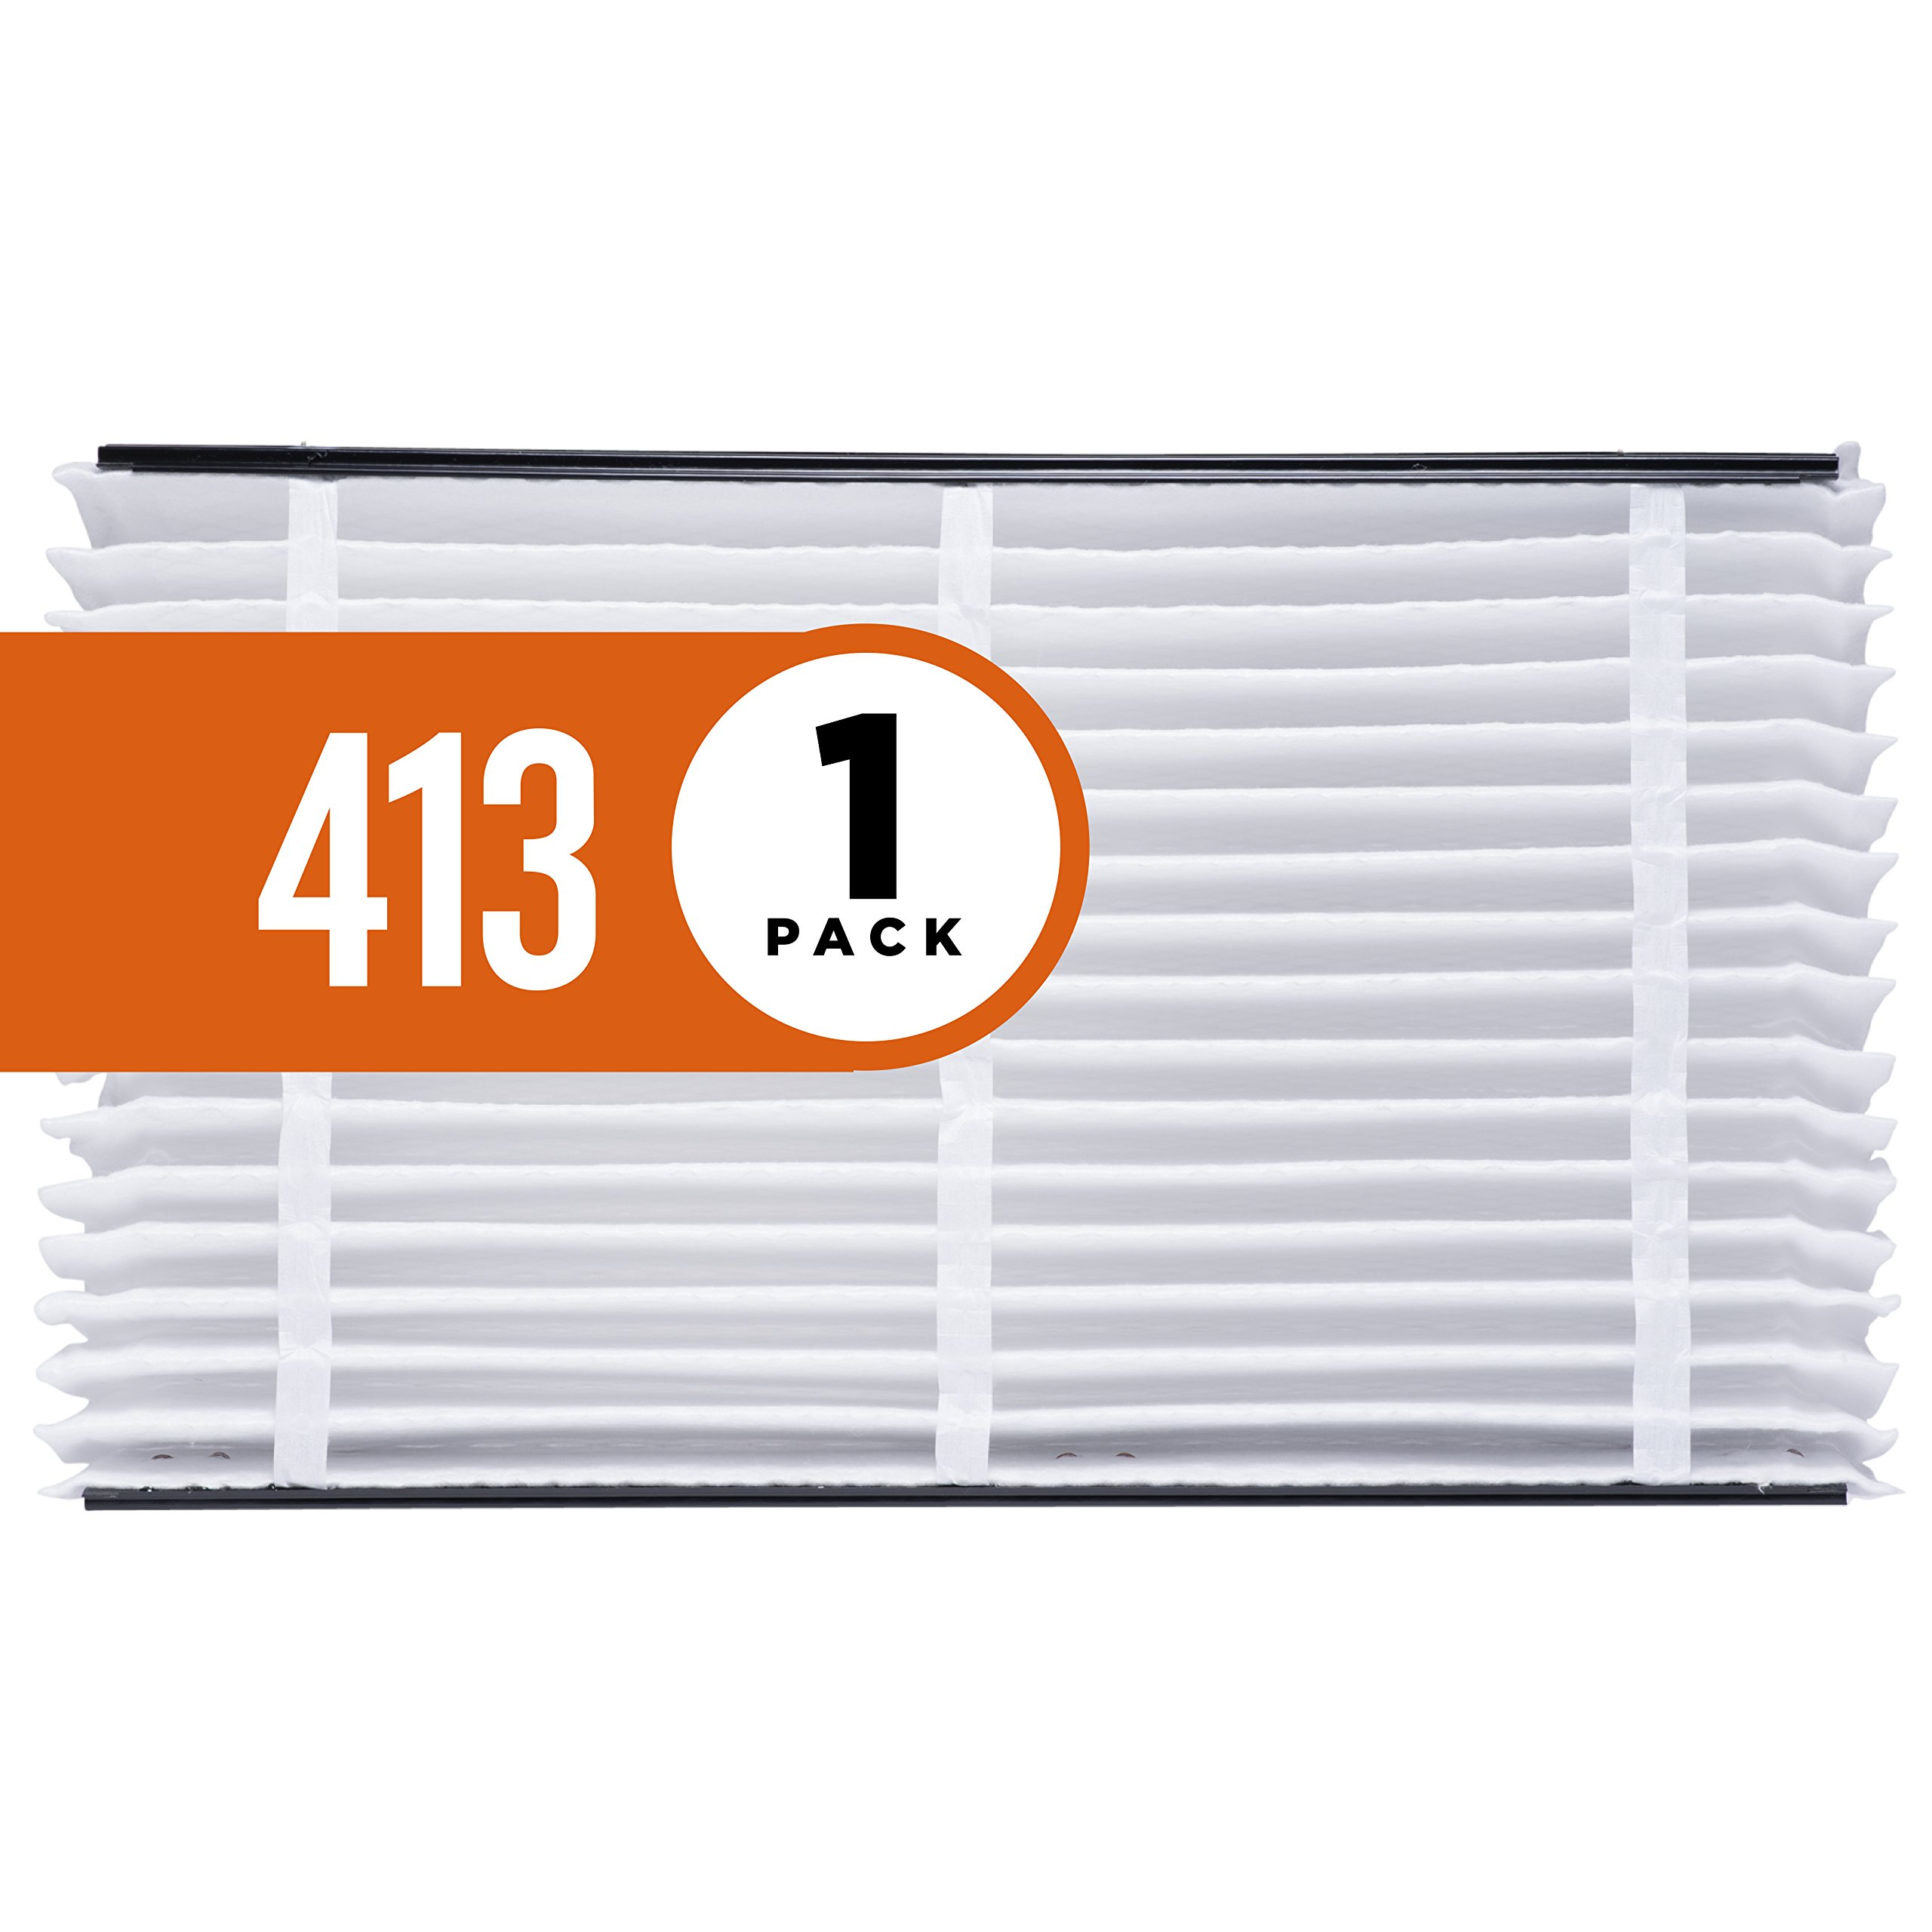 Aprilaire 413 Air Filter for Aprilaire Whole Home Air Purifiers, MERV 13 (Pack of 1)